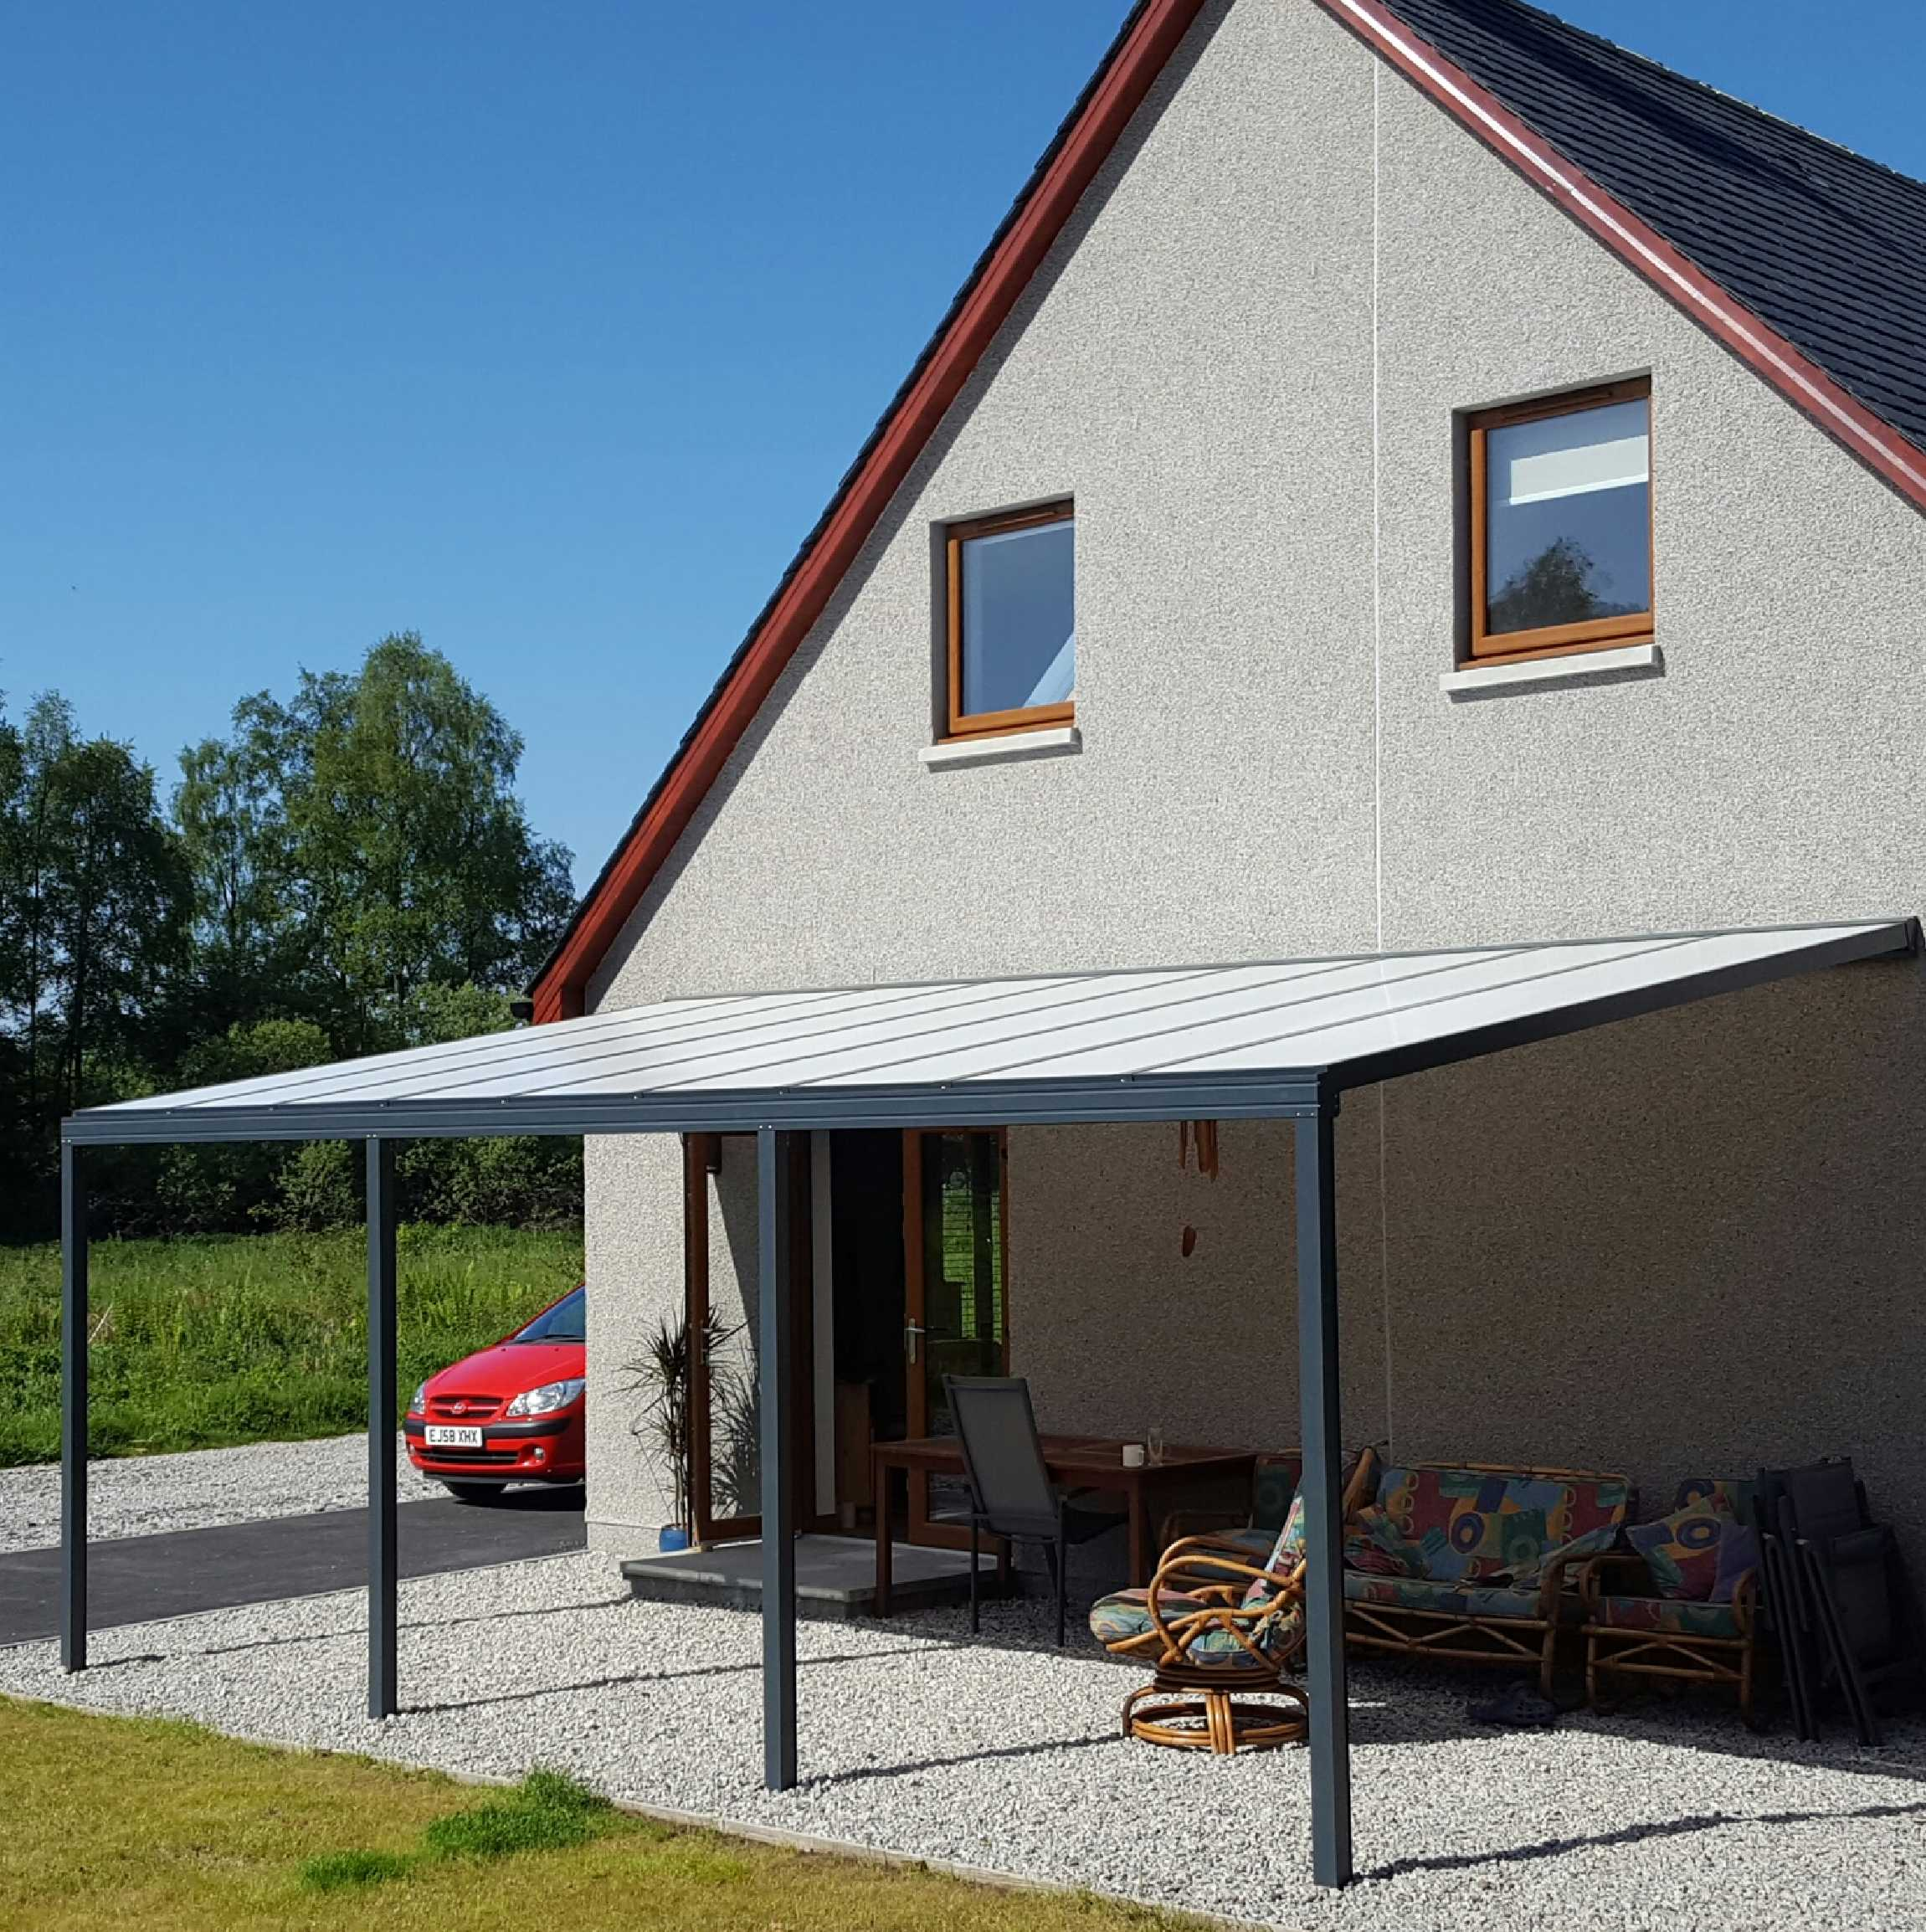 Great selection of Omega Smart Lean-To Canopy, Anthracite Grey, 16mm Polycarbonate Glazing - 5.6m (W) x 3.5m (P), (3) Supporting Posts